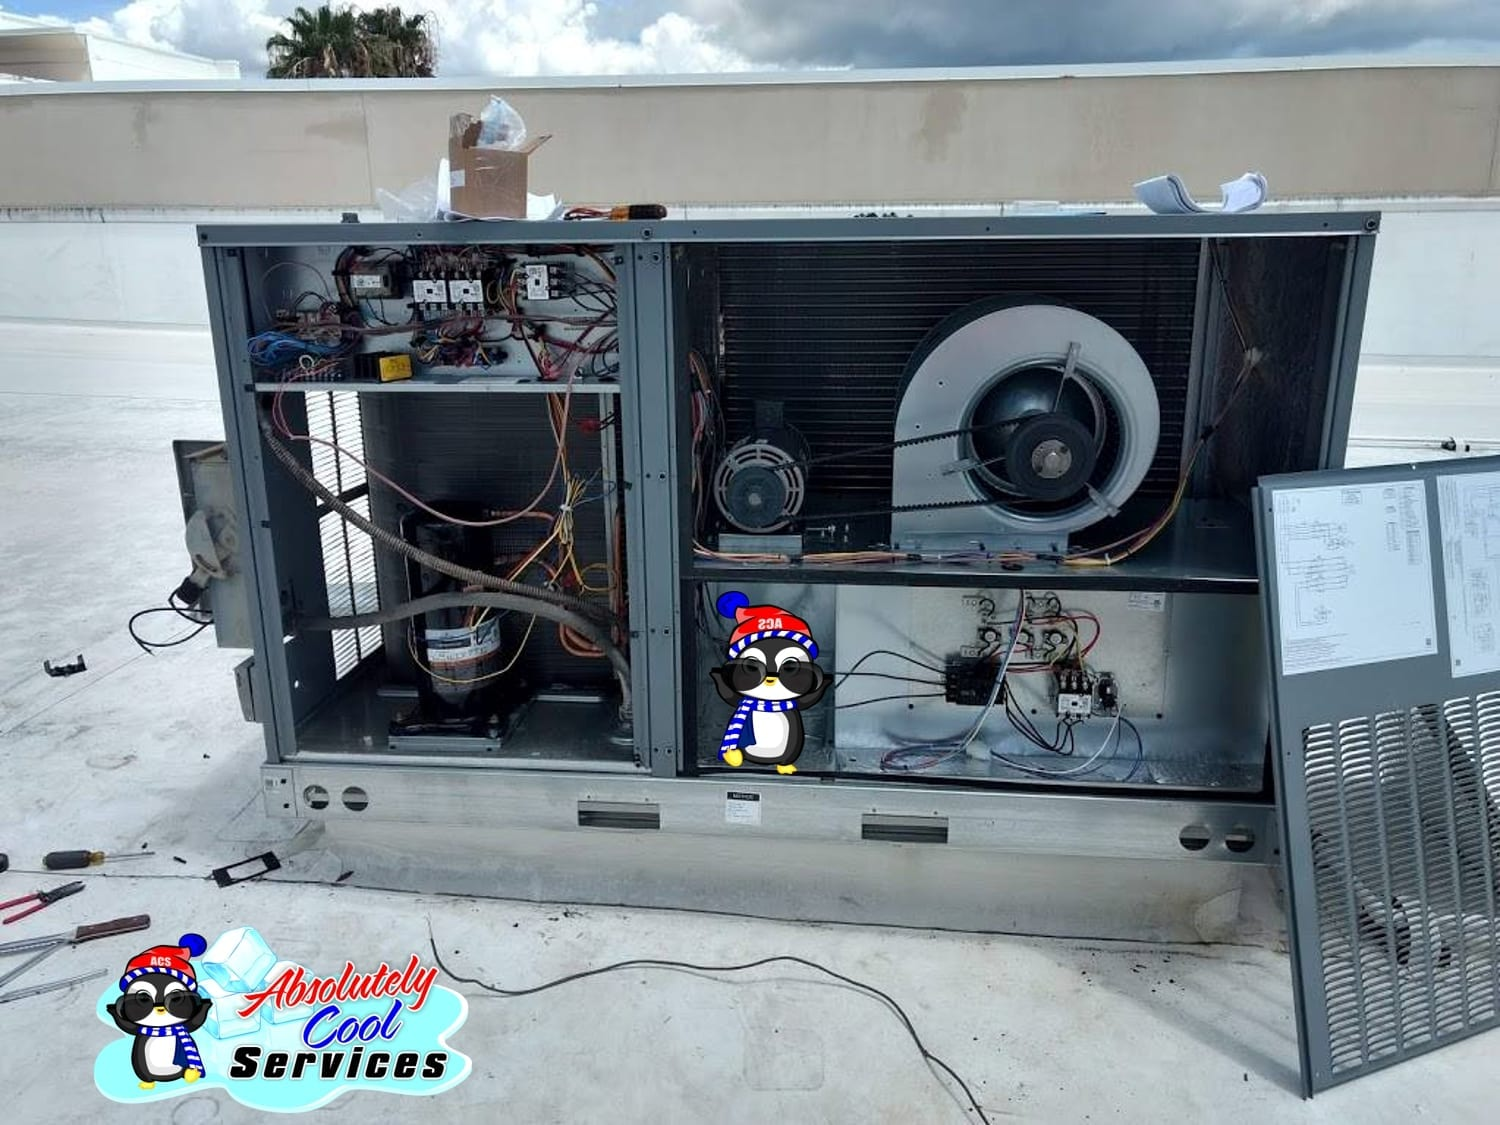 Roof Air Conditioning | Emergency Air Conditioning Installation Company near Boynton Beach